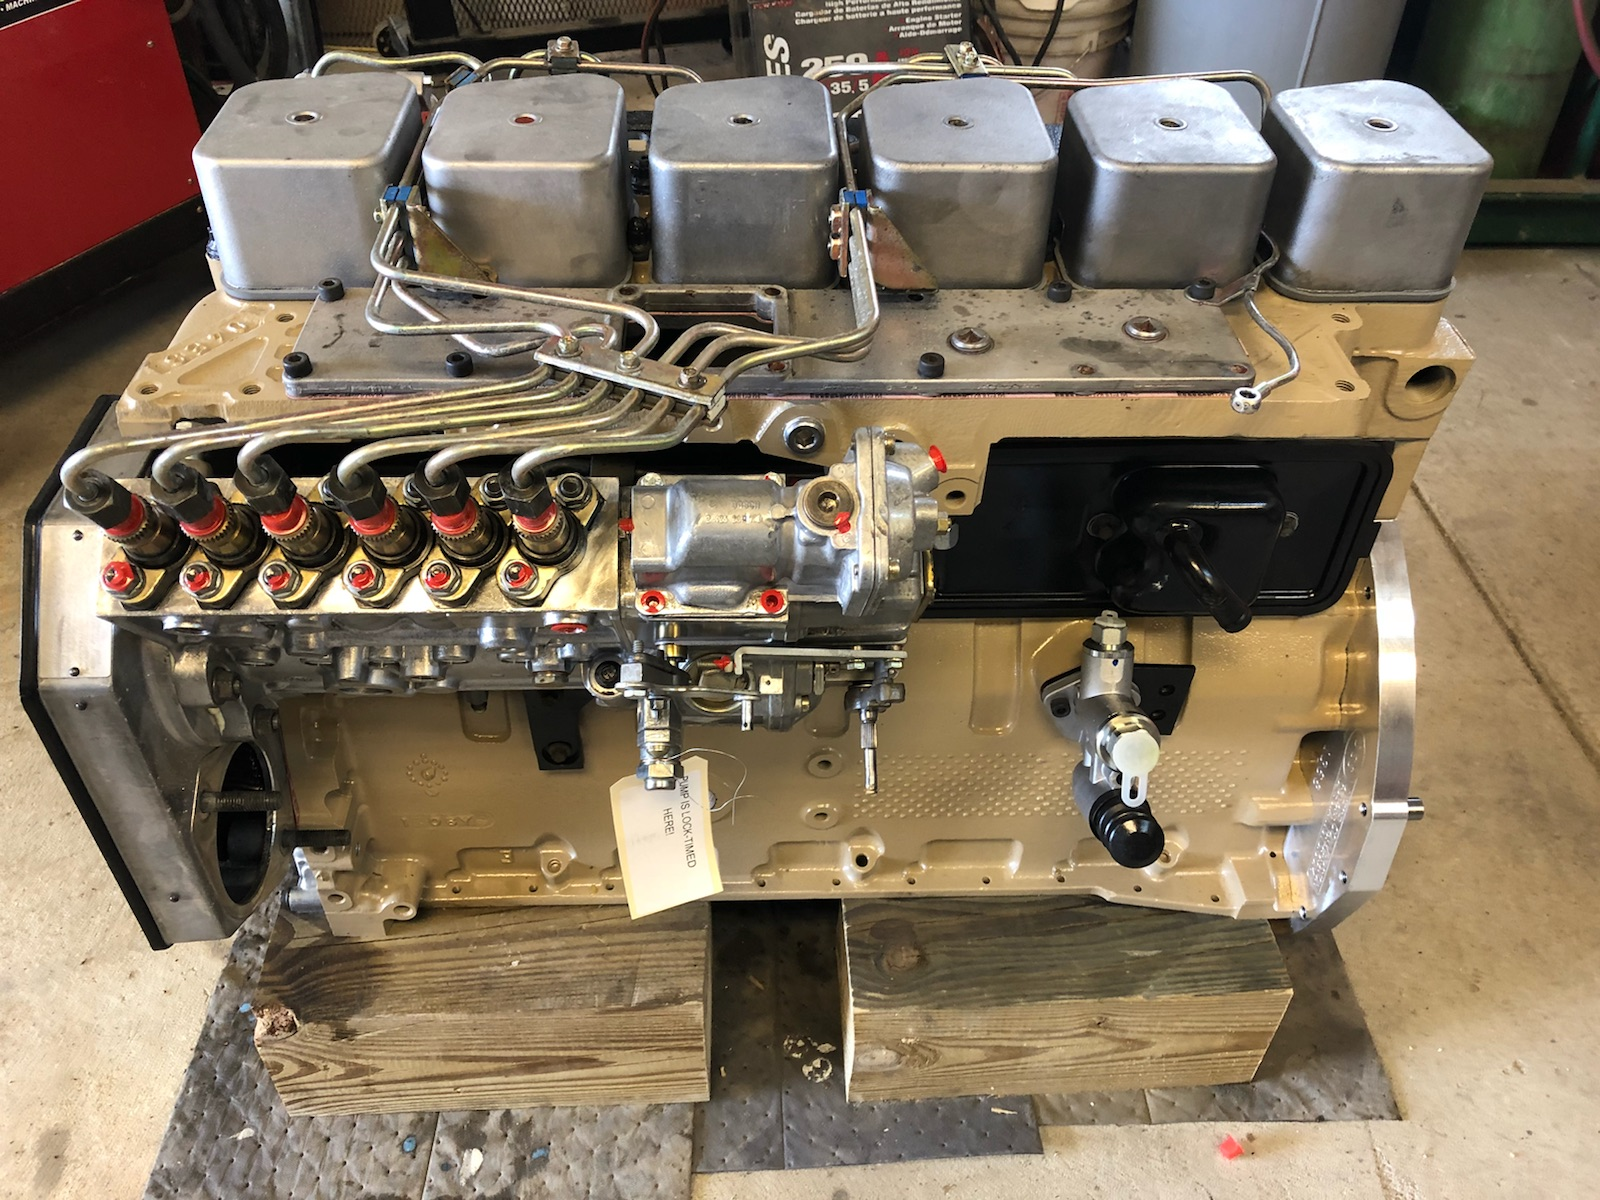 5 9 Cummins Diesel Engine Build With Ford Truck Adapter Kit - Motor